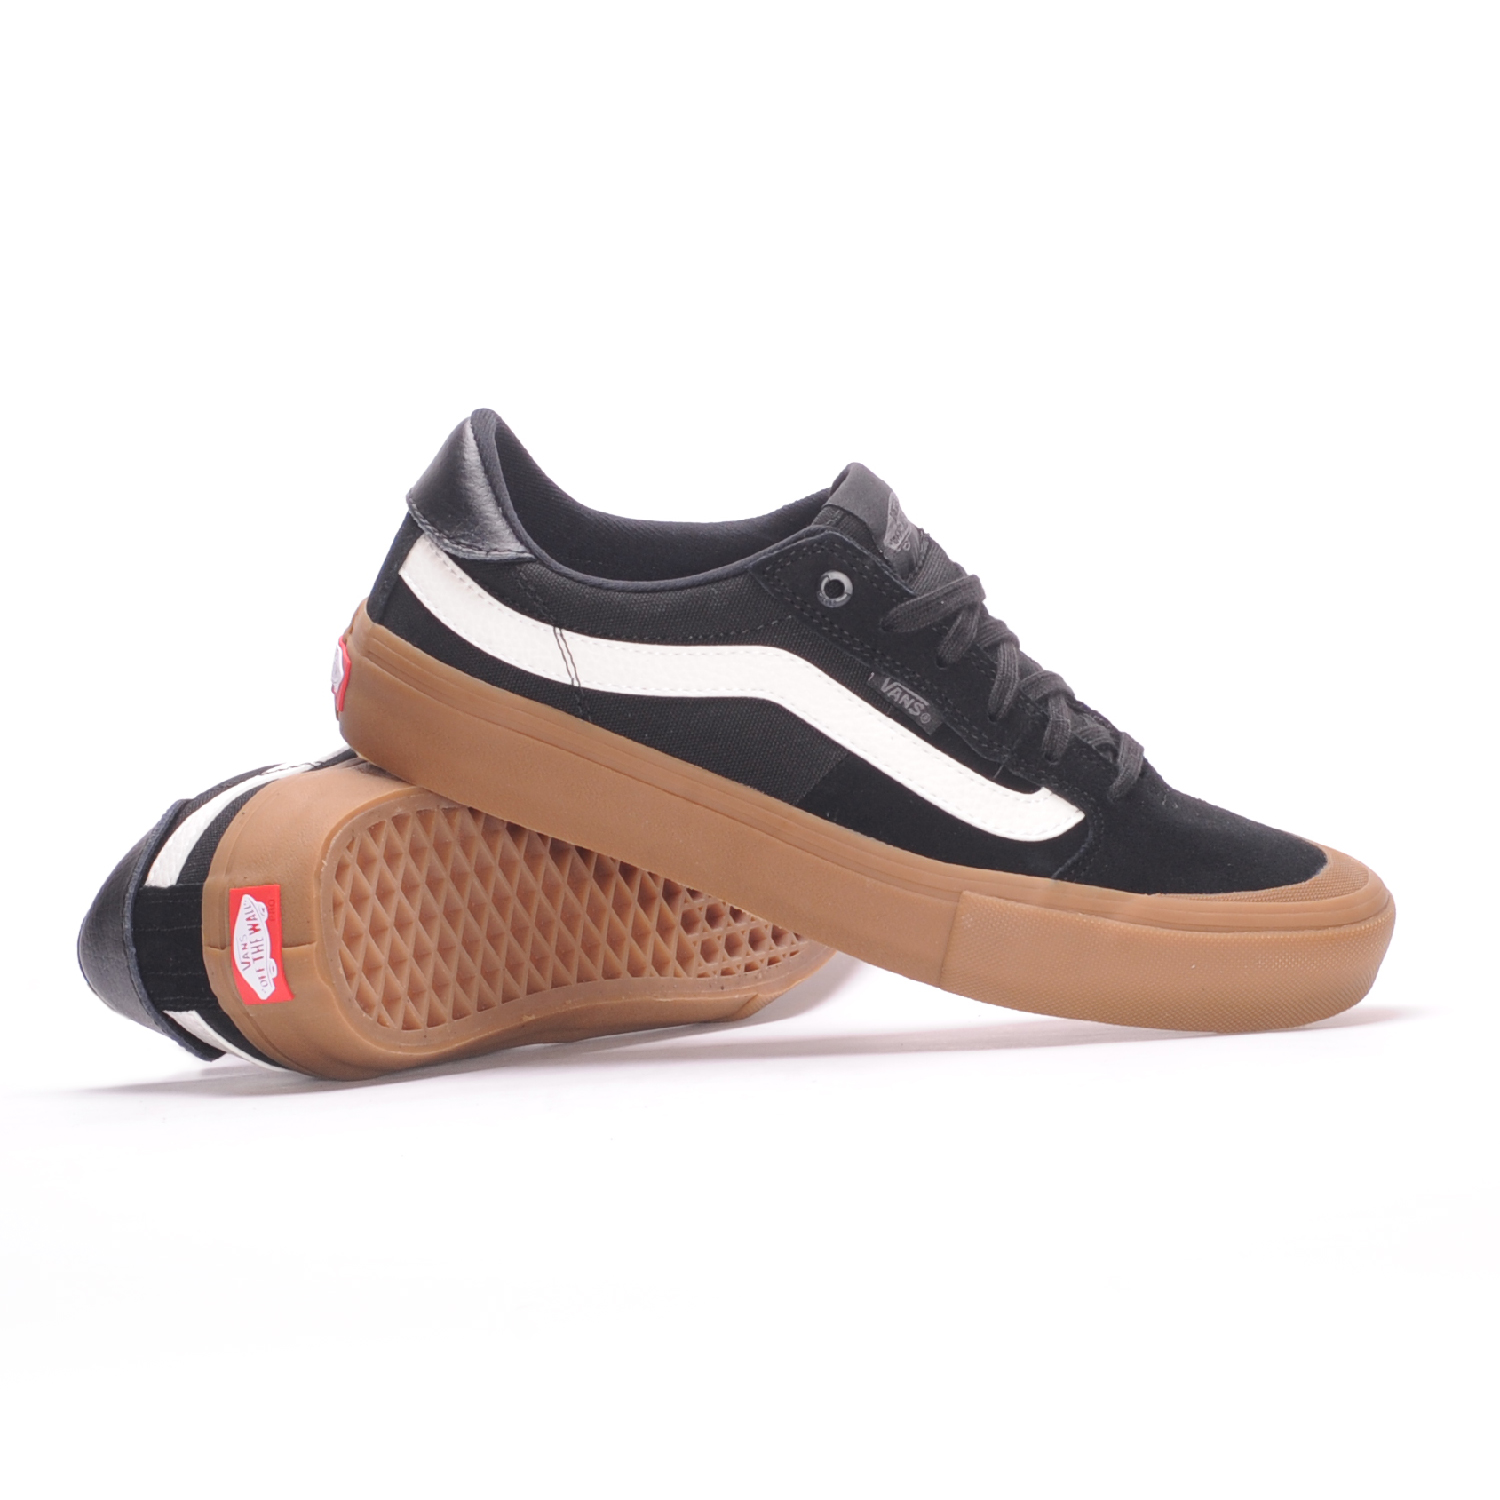 vans style 112 pro black and white